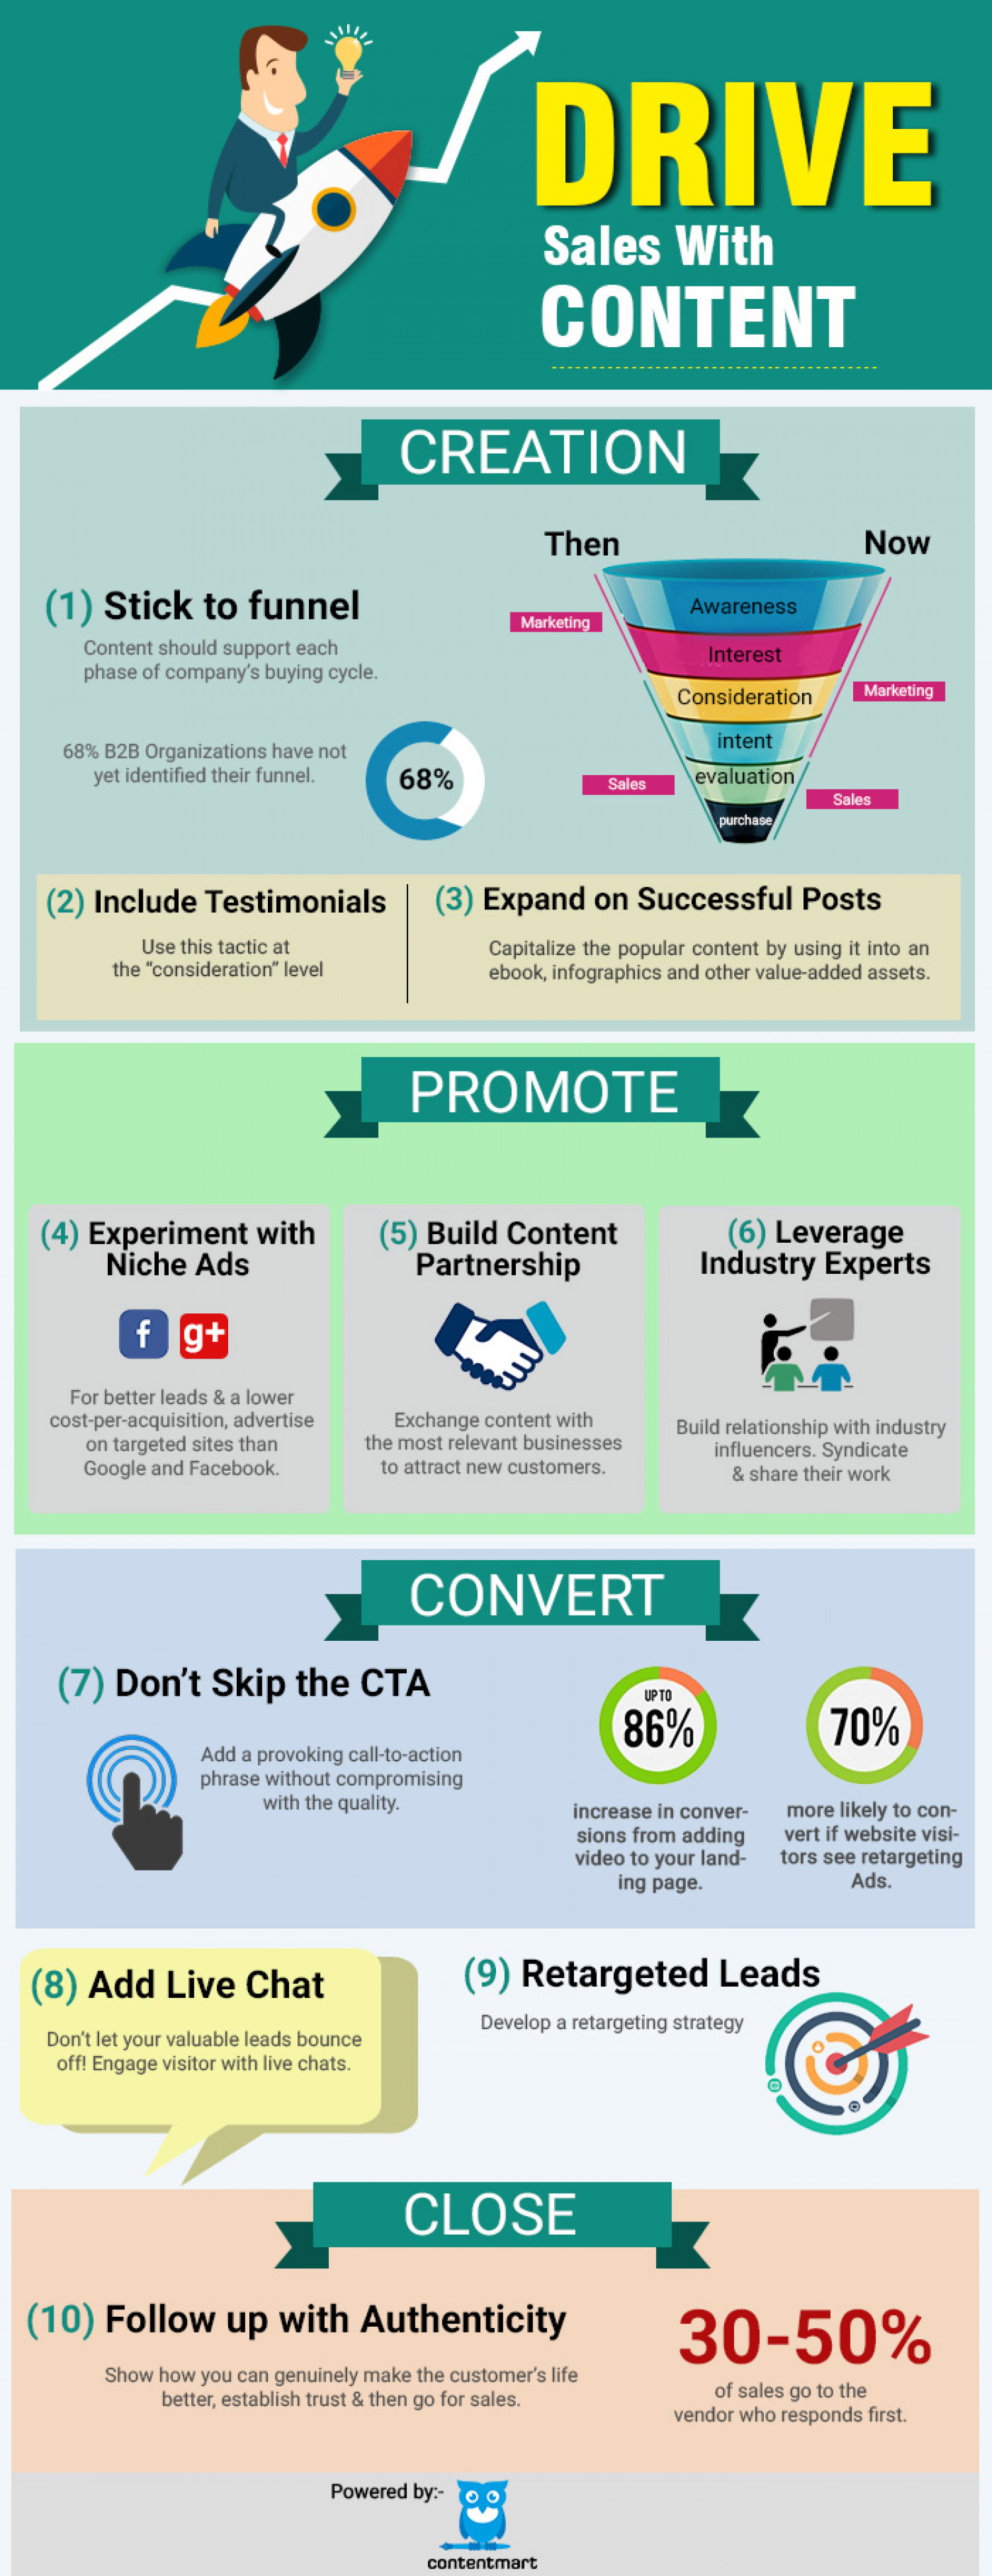 10 Awesome Steps to Drive Sales With High Quality Content Infographic